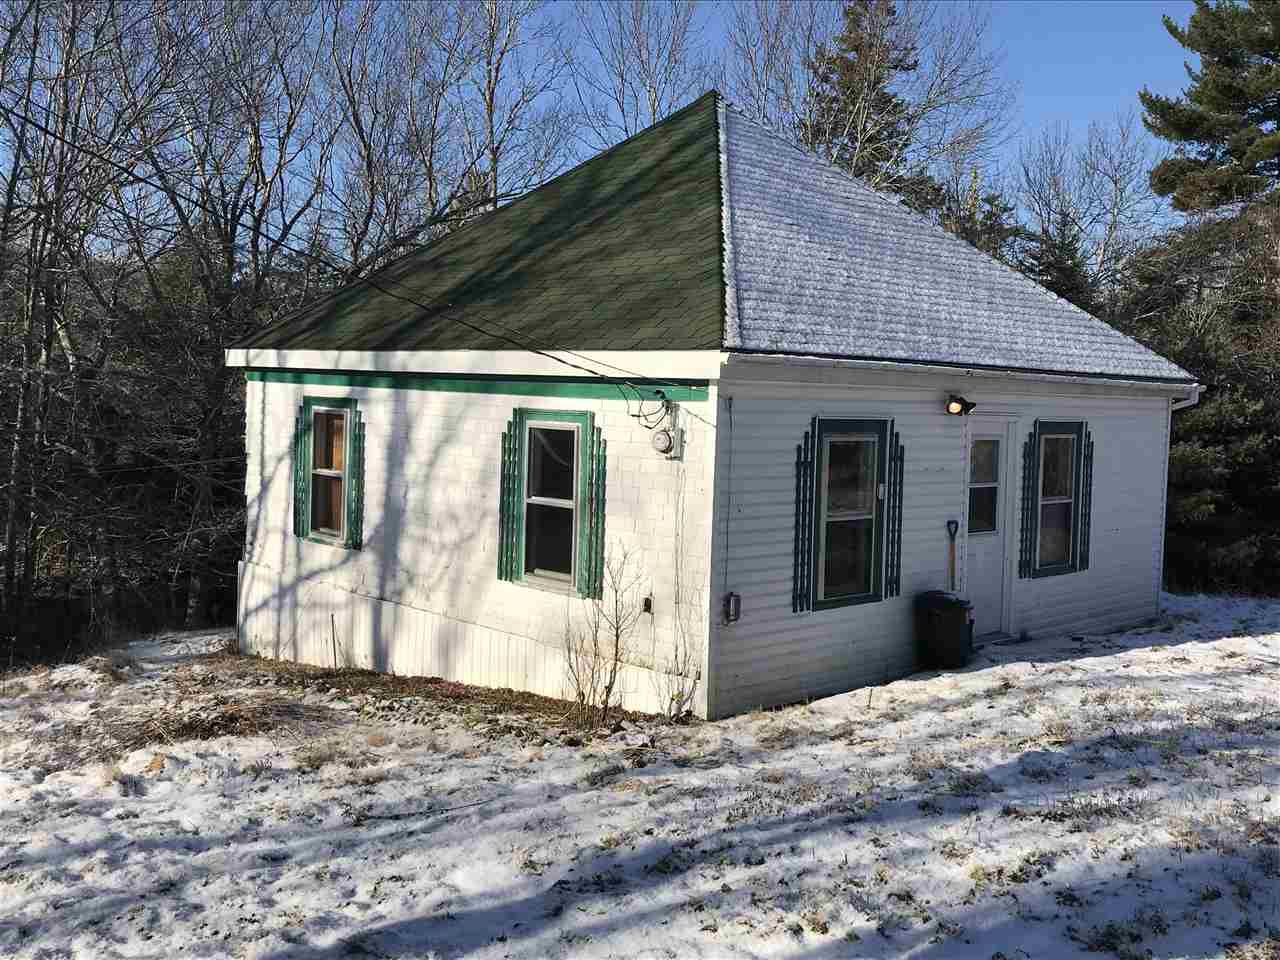 Main Photo: 12907 Highway 7 in Fisher Mills: 303-Guysborough County Residential for sale (Highland Region)  : MLS®# 201828194